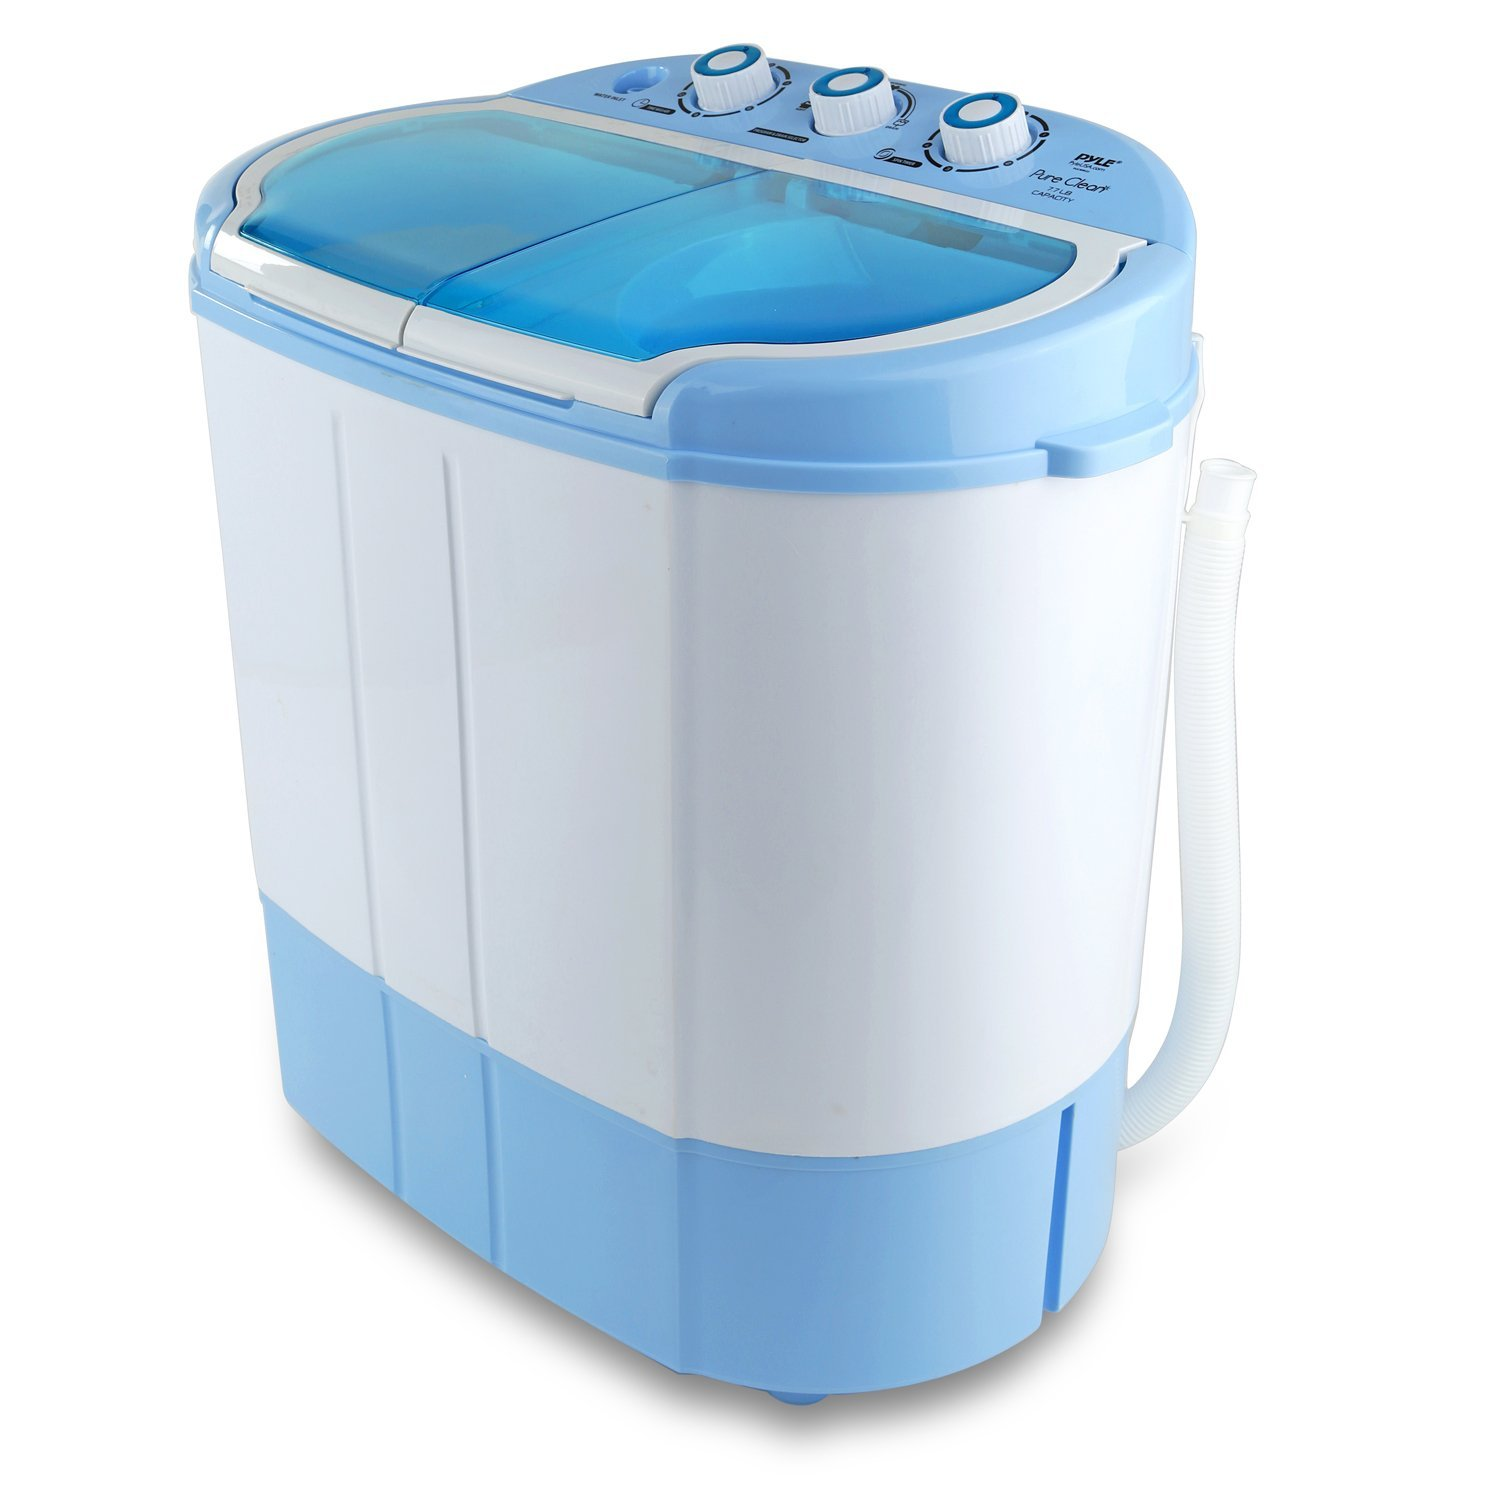 10 Best Portable Washing Machines in 2019 - [ Review ...